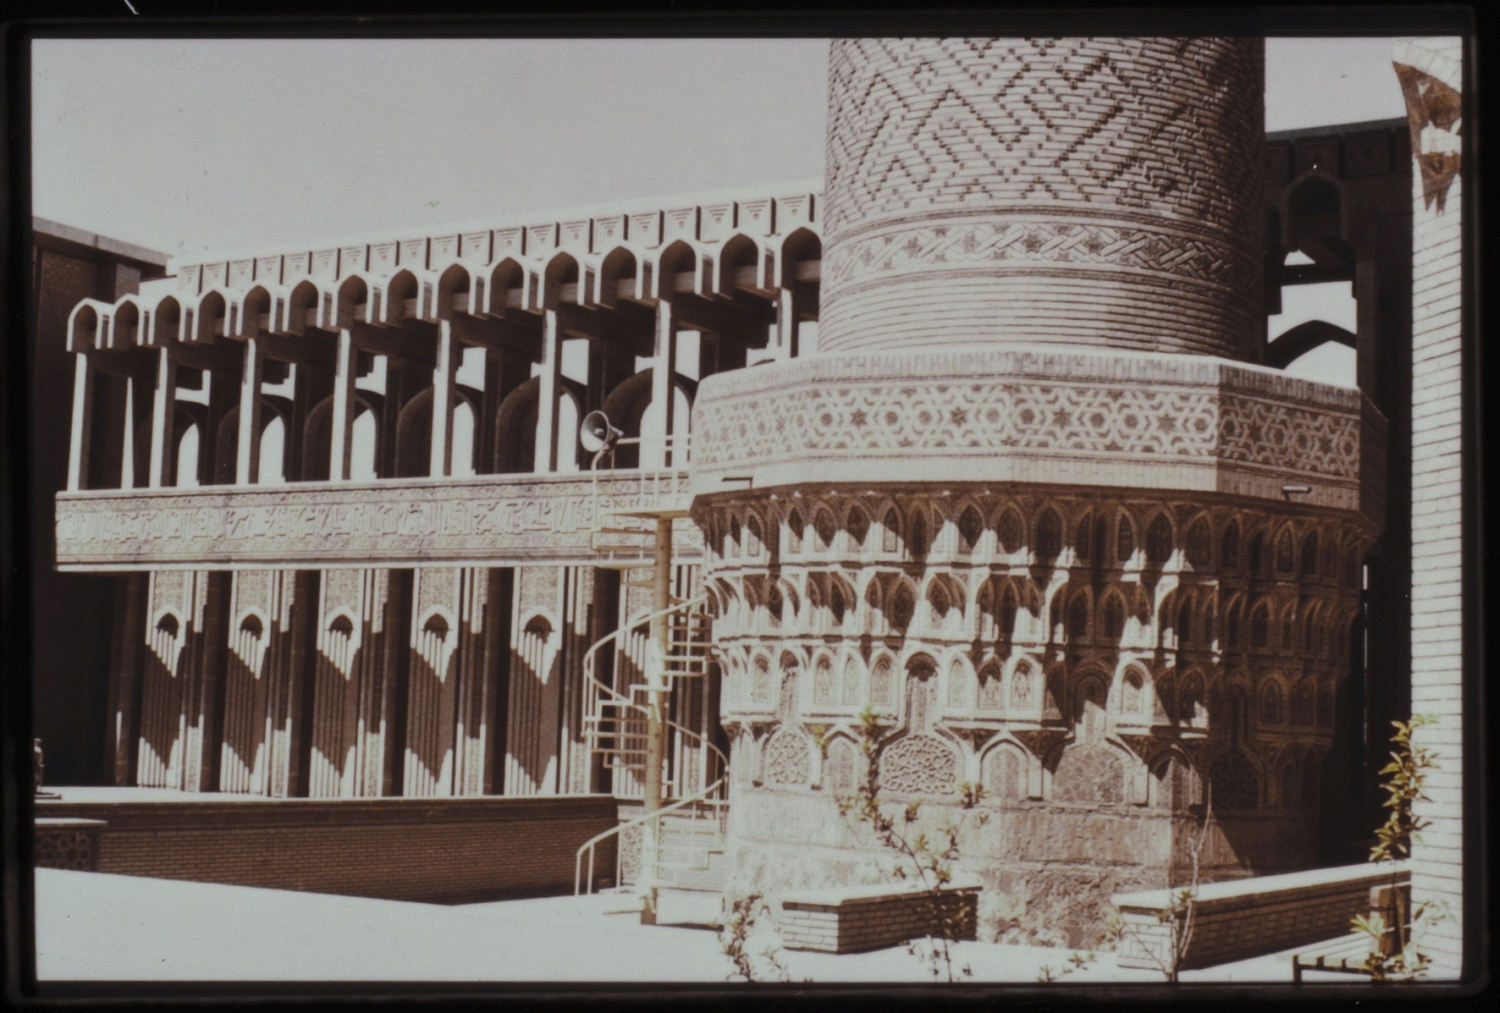 Courtyard, detail of base of minaret; with riwaq, 1970s